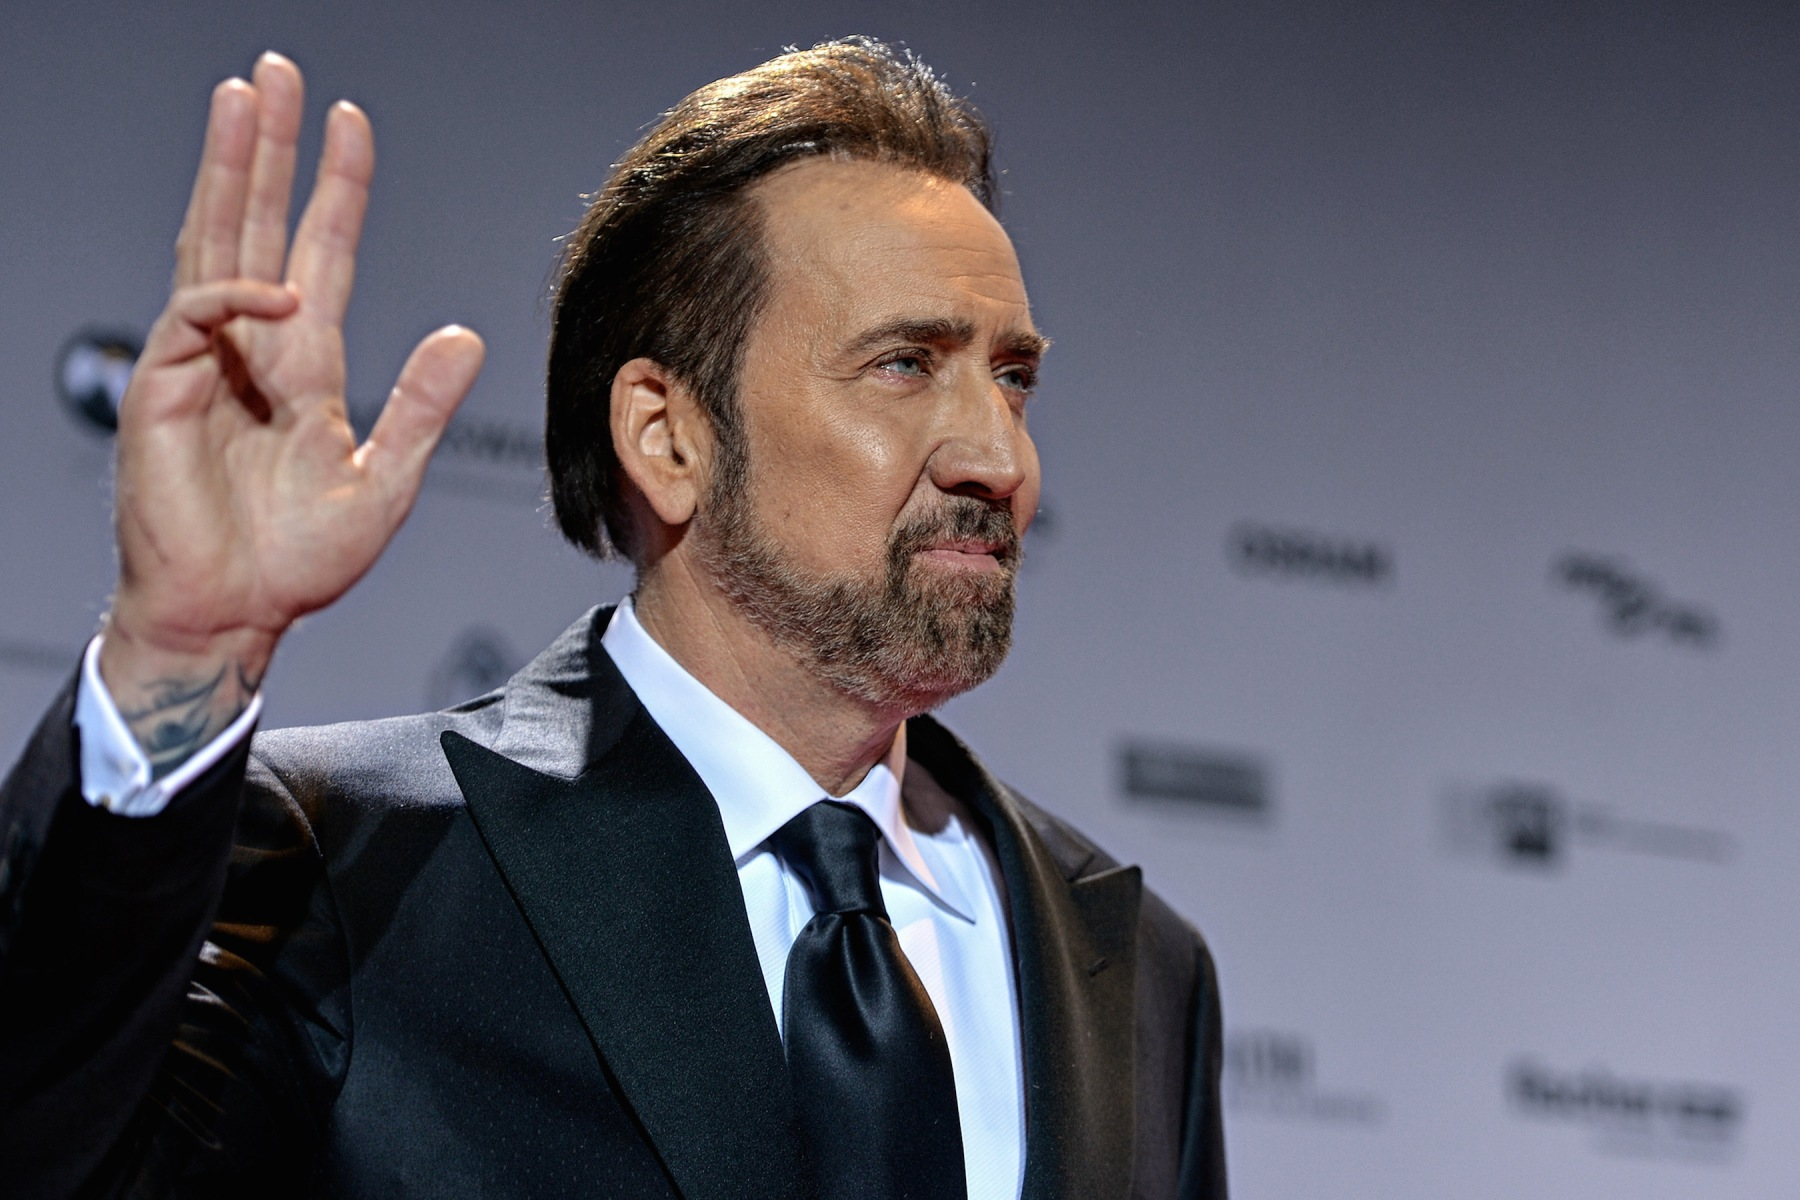 Nicolas Cage attends the German Sustainability Award 2016 (Deutscher Nachhaltigkeitspreis) at Maritim Hotel on November 25, 2016. Cage recently opened up in an interview about his cult internet status. (Photo by Sascha Steinbach/Getty Images)